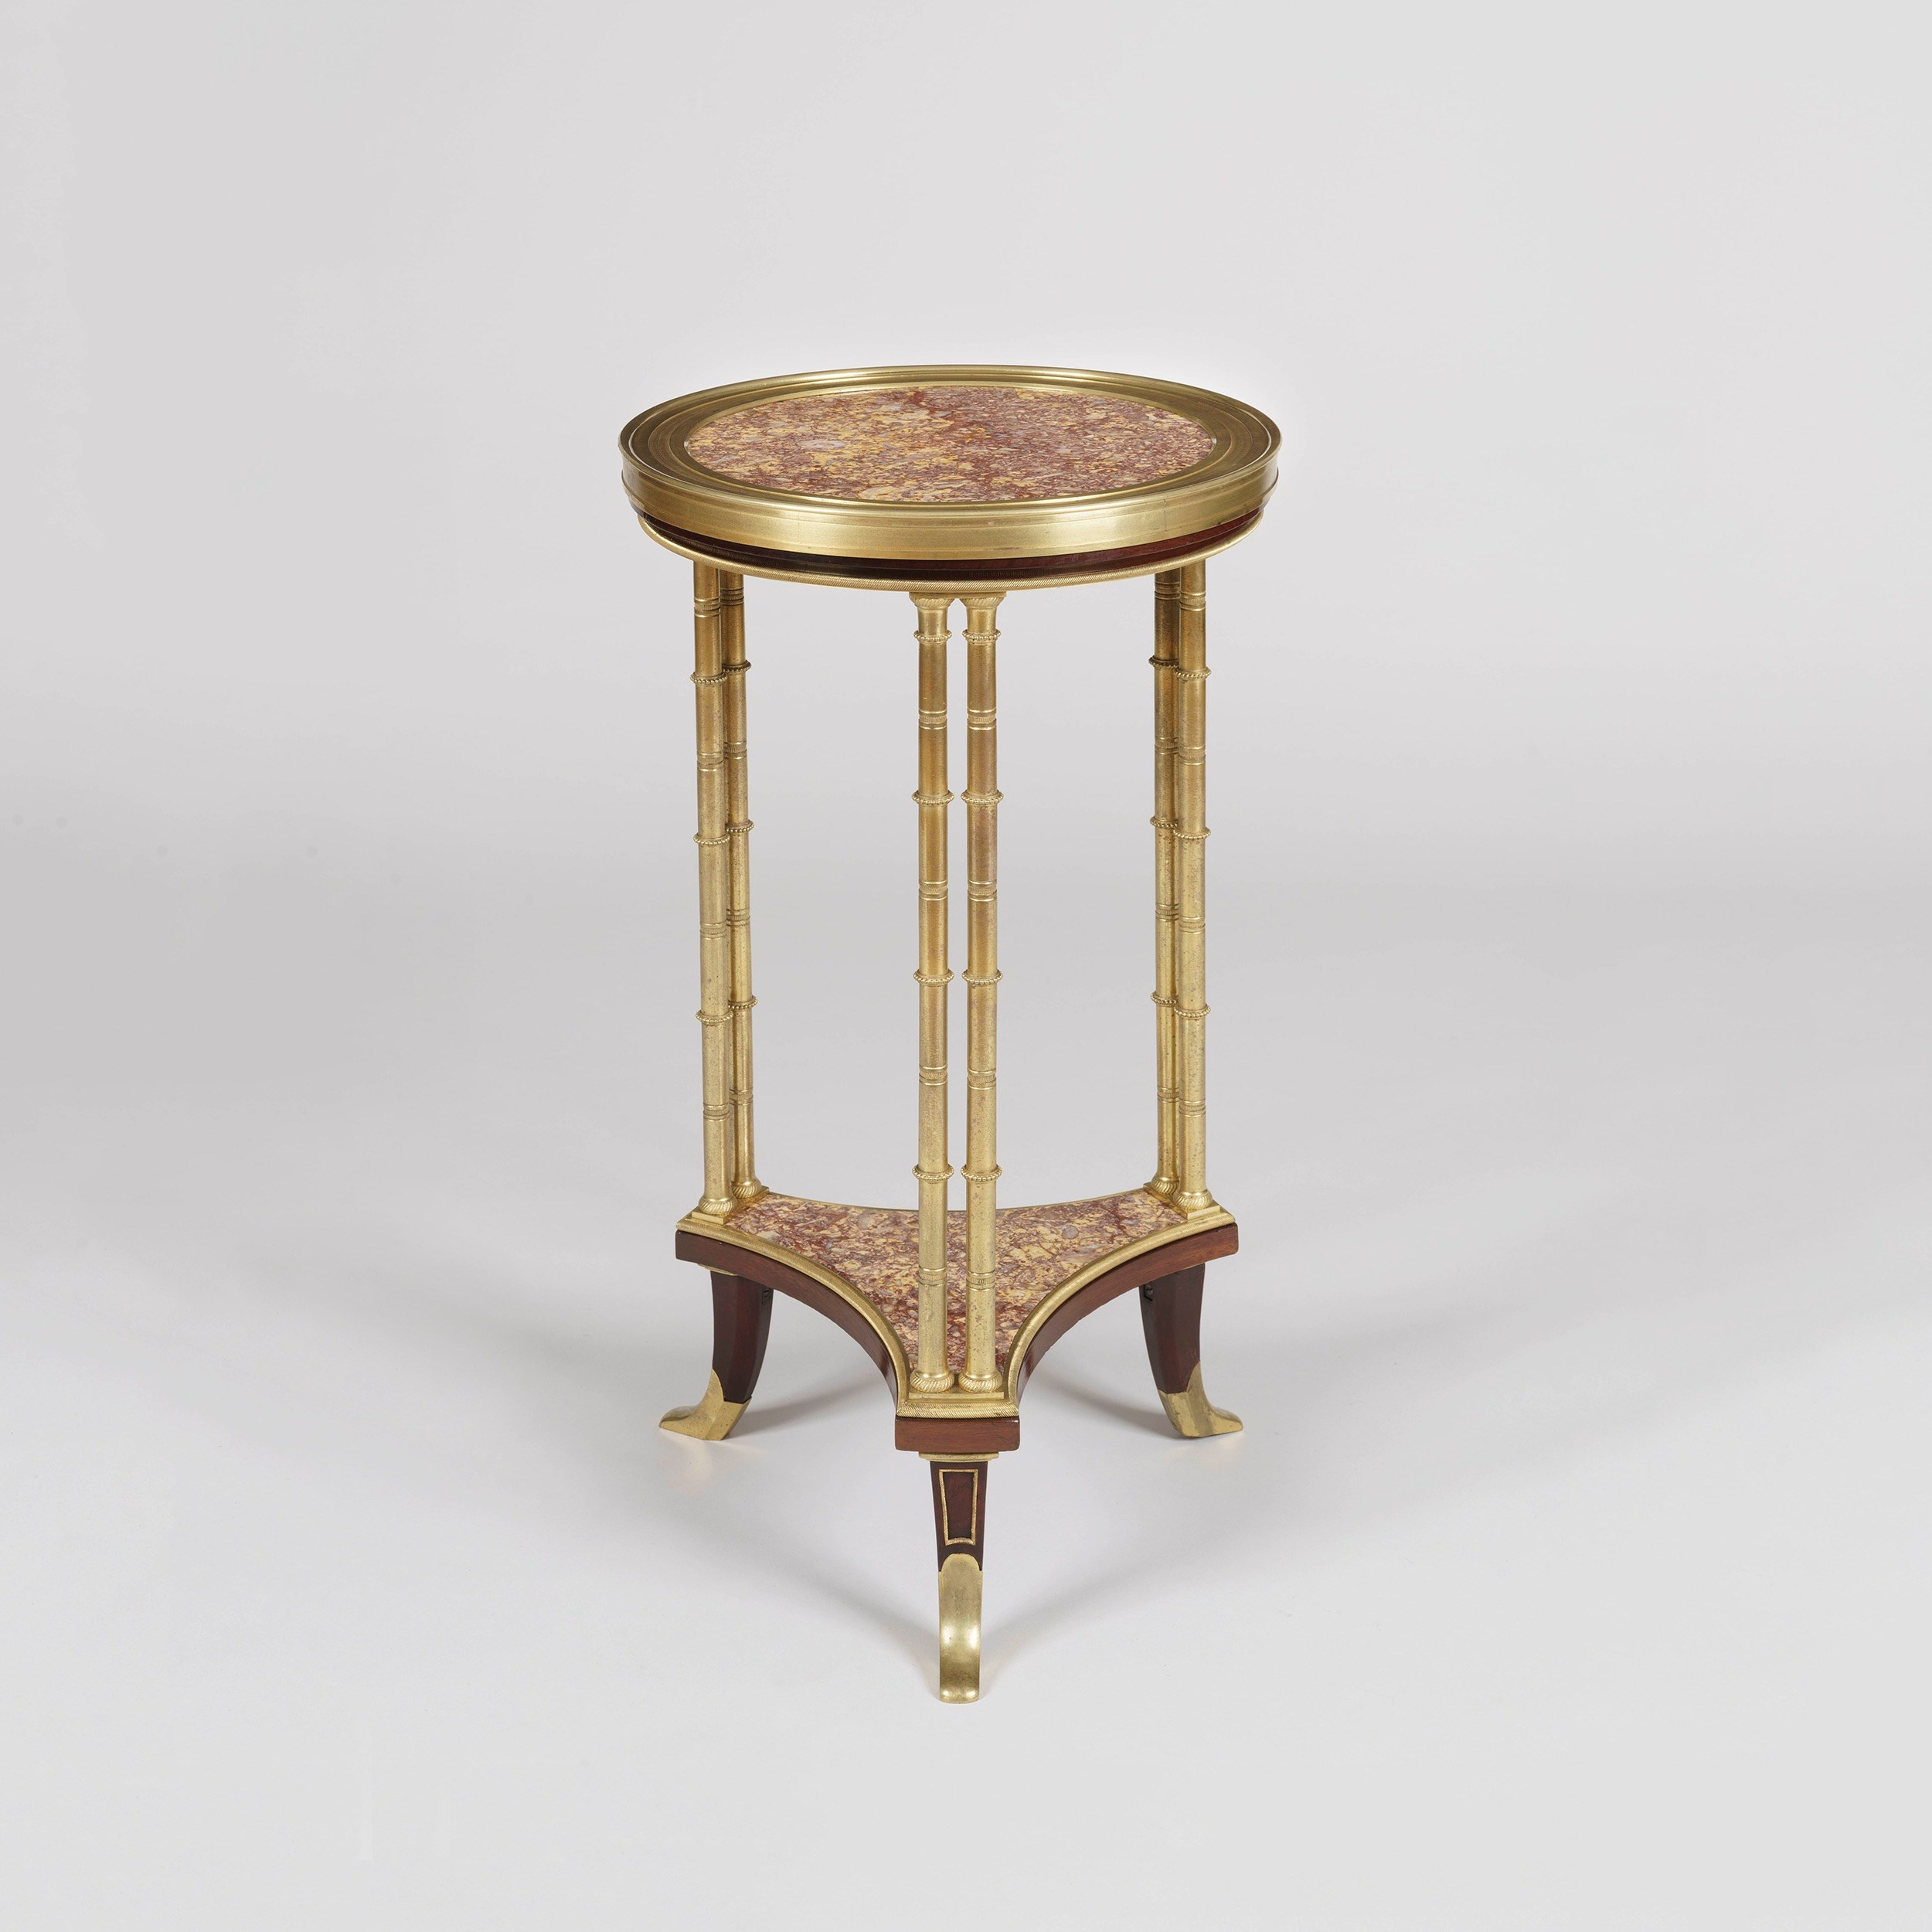 """A Fine Guéridon in the Manner of Adam Weisweiler by Henry Dasson Constructed in Brocatelle d'Espagne marble and mahogany, with finely cast and chased gilt bronze mounts; the top tier of circular form supported on cluster legs of bamboo shape in the typical manner of Weisweiler. The columns joined by a concave-shaped lower tier supported by flared feet dressed with gilt bronze sabots. This celebrated model of gueridon exemplifies the height of taste at the end of the eighteenth century, it was given by Madame du Barry (1743-1793) to the duc de Brissac, delivered by Lignereux and Daguerre. Daguerre's inventory describes a table of corresponding description """"Une petite table ronde forme de guéridon en racine de bois d'acajou poli sur trois pieds doubles en bronze doré façon de bambous avec entrejambe à tablettes et camé de porcelaine ornant la tablette supérieure prisée trois cent francs."""" (Segoura, Maurice, and Patricia Lemonnier. Weisweiler. Paris: Monelle Hayot, 1983.) Henry Dasson became renowned in the nineteenth century for his furniture based on historical designs, often incorporating stylistic elements created by Weisweiler (see Payne, Christopher. Paris Furniture: The Luxury Market of the 19th Century. [S.L.]: Editions D'art Monelle, 2018.). Christopher Payne maintains that """"His [Dasson's] best work must be the combinations of elements from Riesener and Weisweiler in a modernised Louis XVI manner"""" (p. 315) as seen in the present gueridon. Signed and dated 'Henry Dasson. 1878.' French, 1878 Dimensions: H: 26 in / 65 cm  